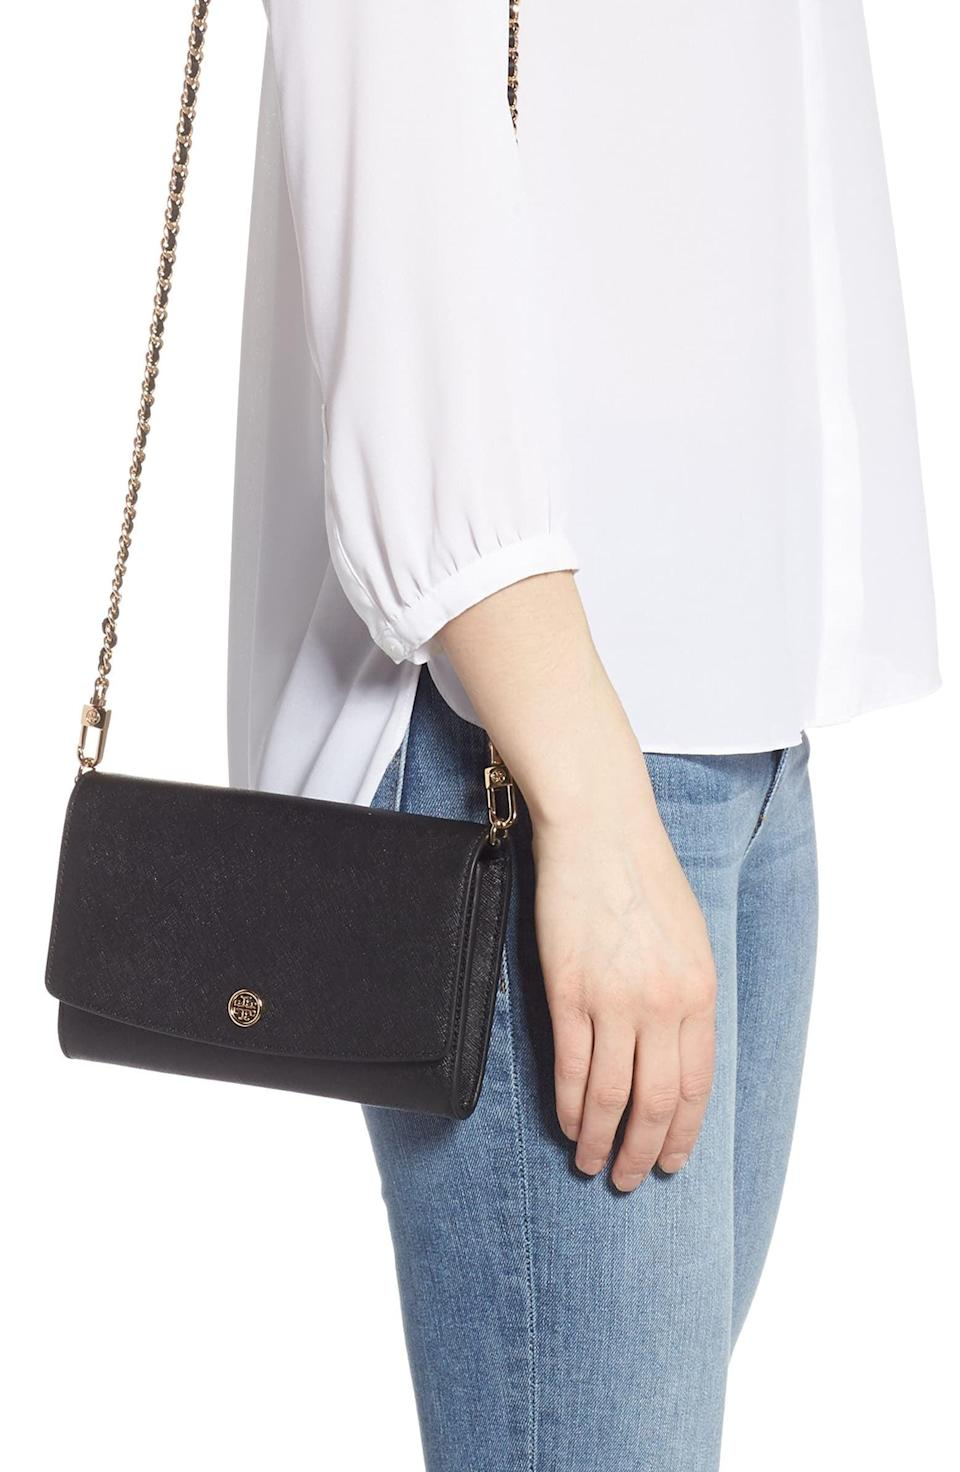 <p>This <span>Tory Burch Robinson Leather Wallet on a Chain</span> ($298) is such a good option because it gives you easy access to your valuables while traveling, and it also doubles as a crossbody for going out.</p>